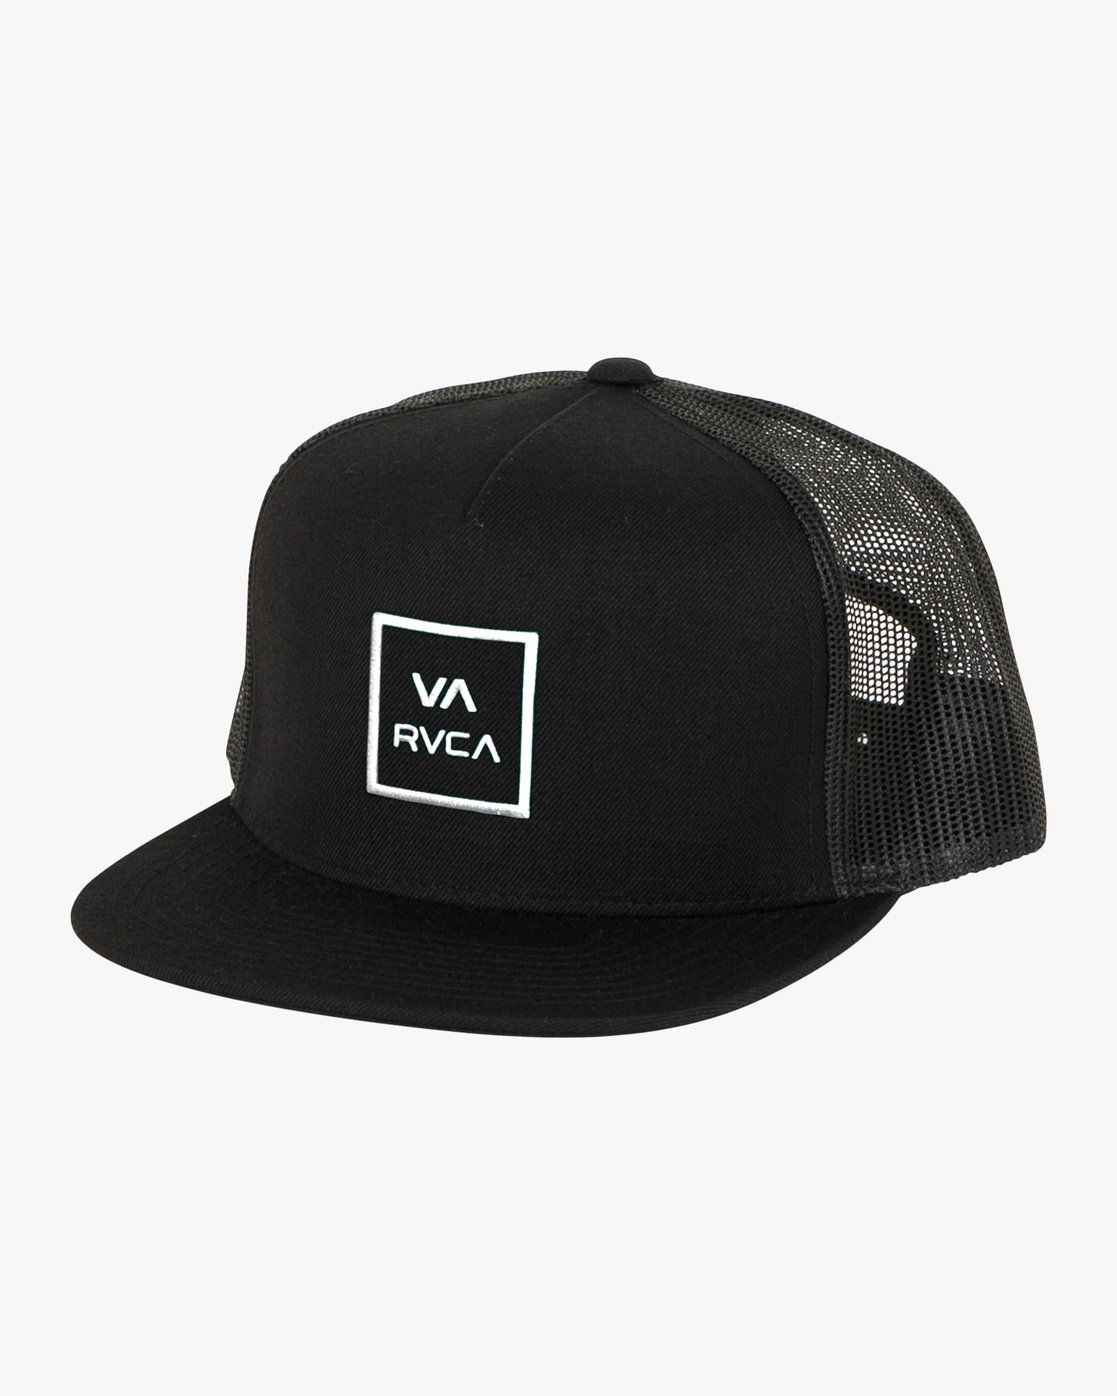 0 Boy's VA All The Way Trucker Hat Black BAAHWVAA RVCA